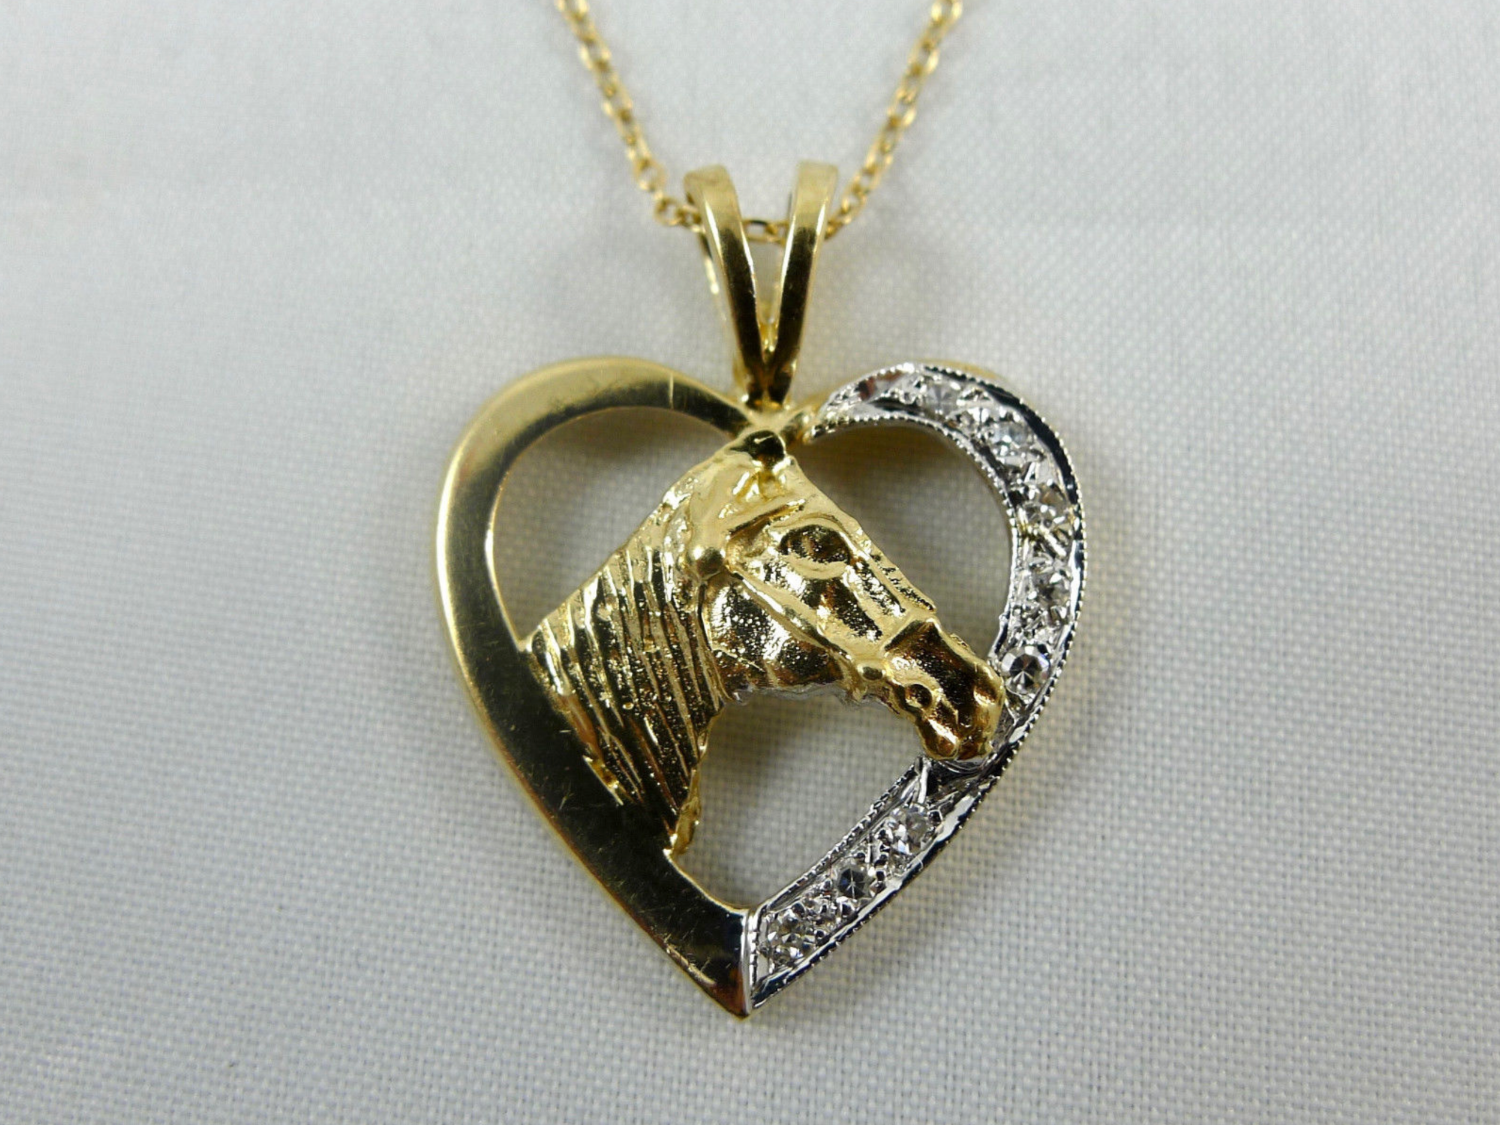 Gold diamond horse pendant necklace hock my rock gold diamond horse pendant necklace aloadofball Images